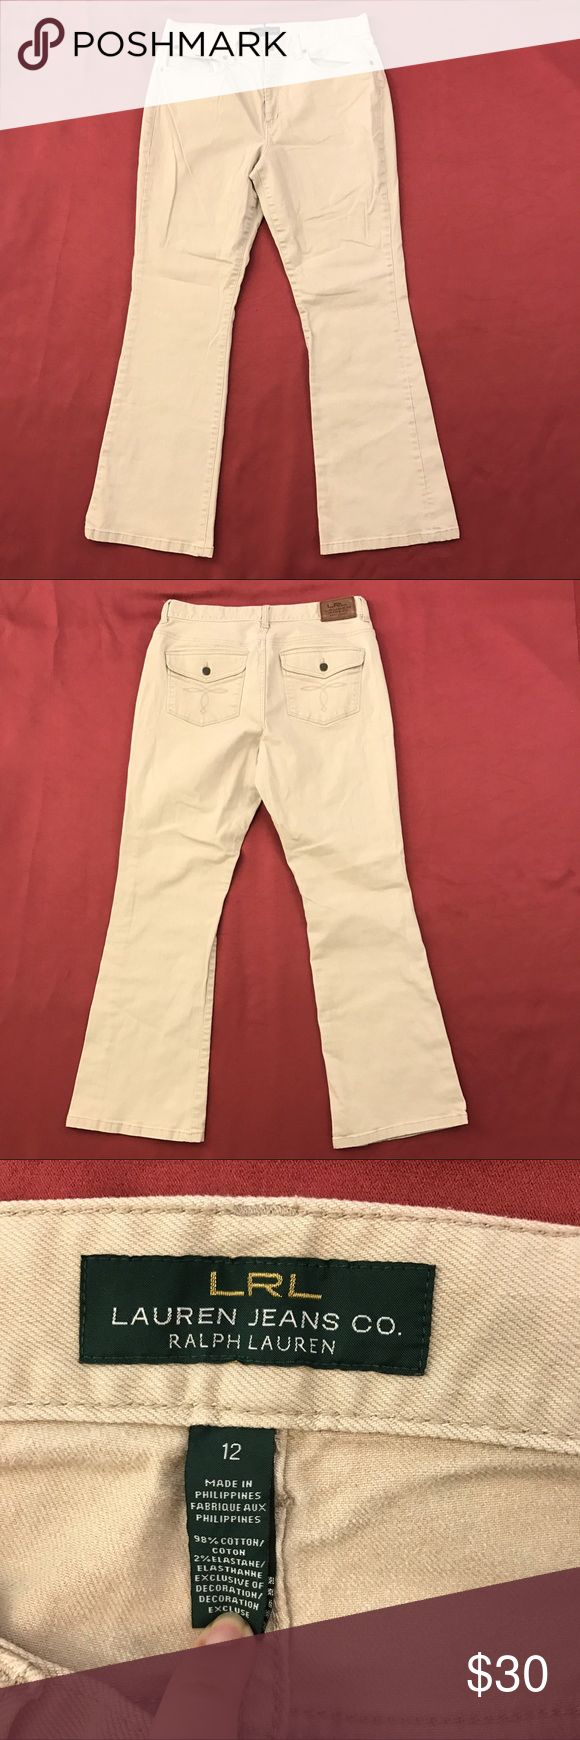 """Bootcut Beige Chino Pants 🦋 30"""" Inseam Lauren By Ralph Lauren Pants  Women's Size: 12  Gently used with no flaws.  98% Cotton 2% Elastane  Measurements lying flat: Waist 18"""", Hips 22"""", Inseam 30.5"""", Front Rise 12"""", Back Rise 15"""".  Please, review pictures. You will get the item shown. Smoke & pet free home. Lauren Ralph Lauren Pants Boot Cut & Flare"""